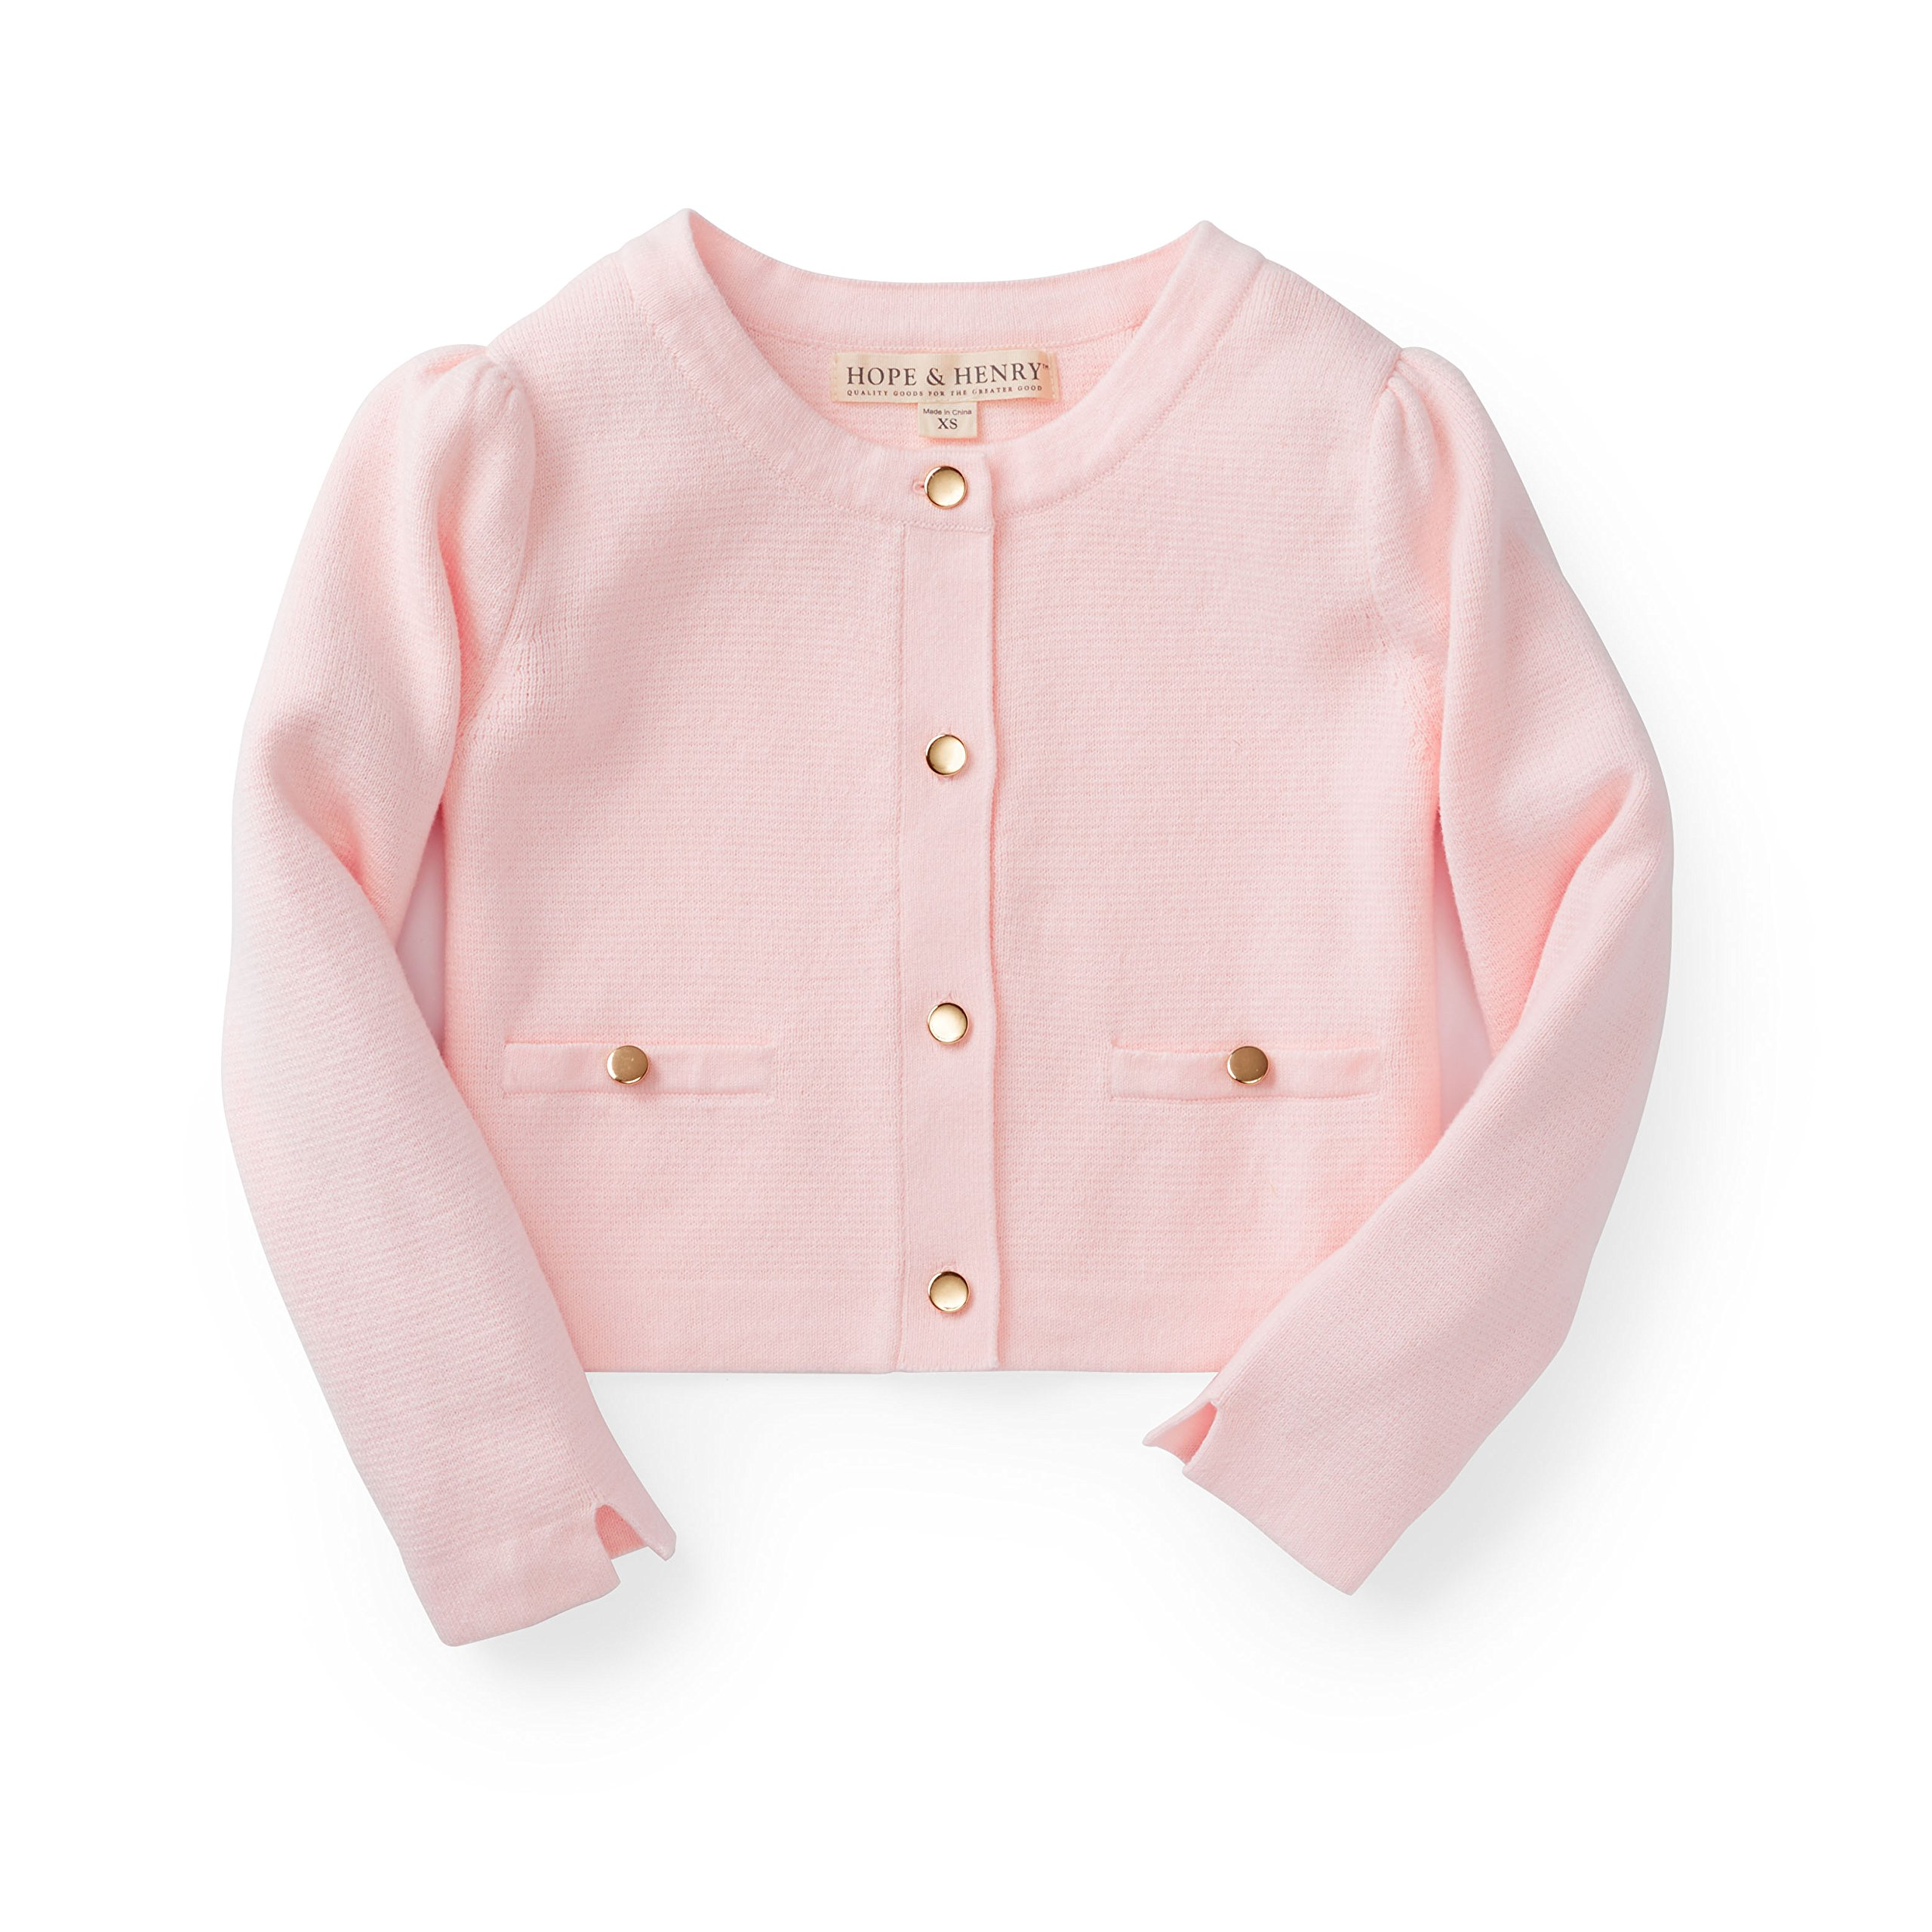 Hope & Henry Girls' Pink Full Milano Sweater Jacket Made with Organic Cotton